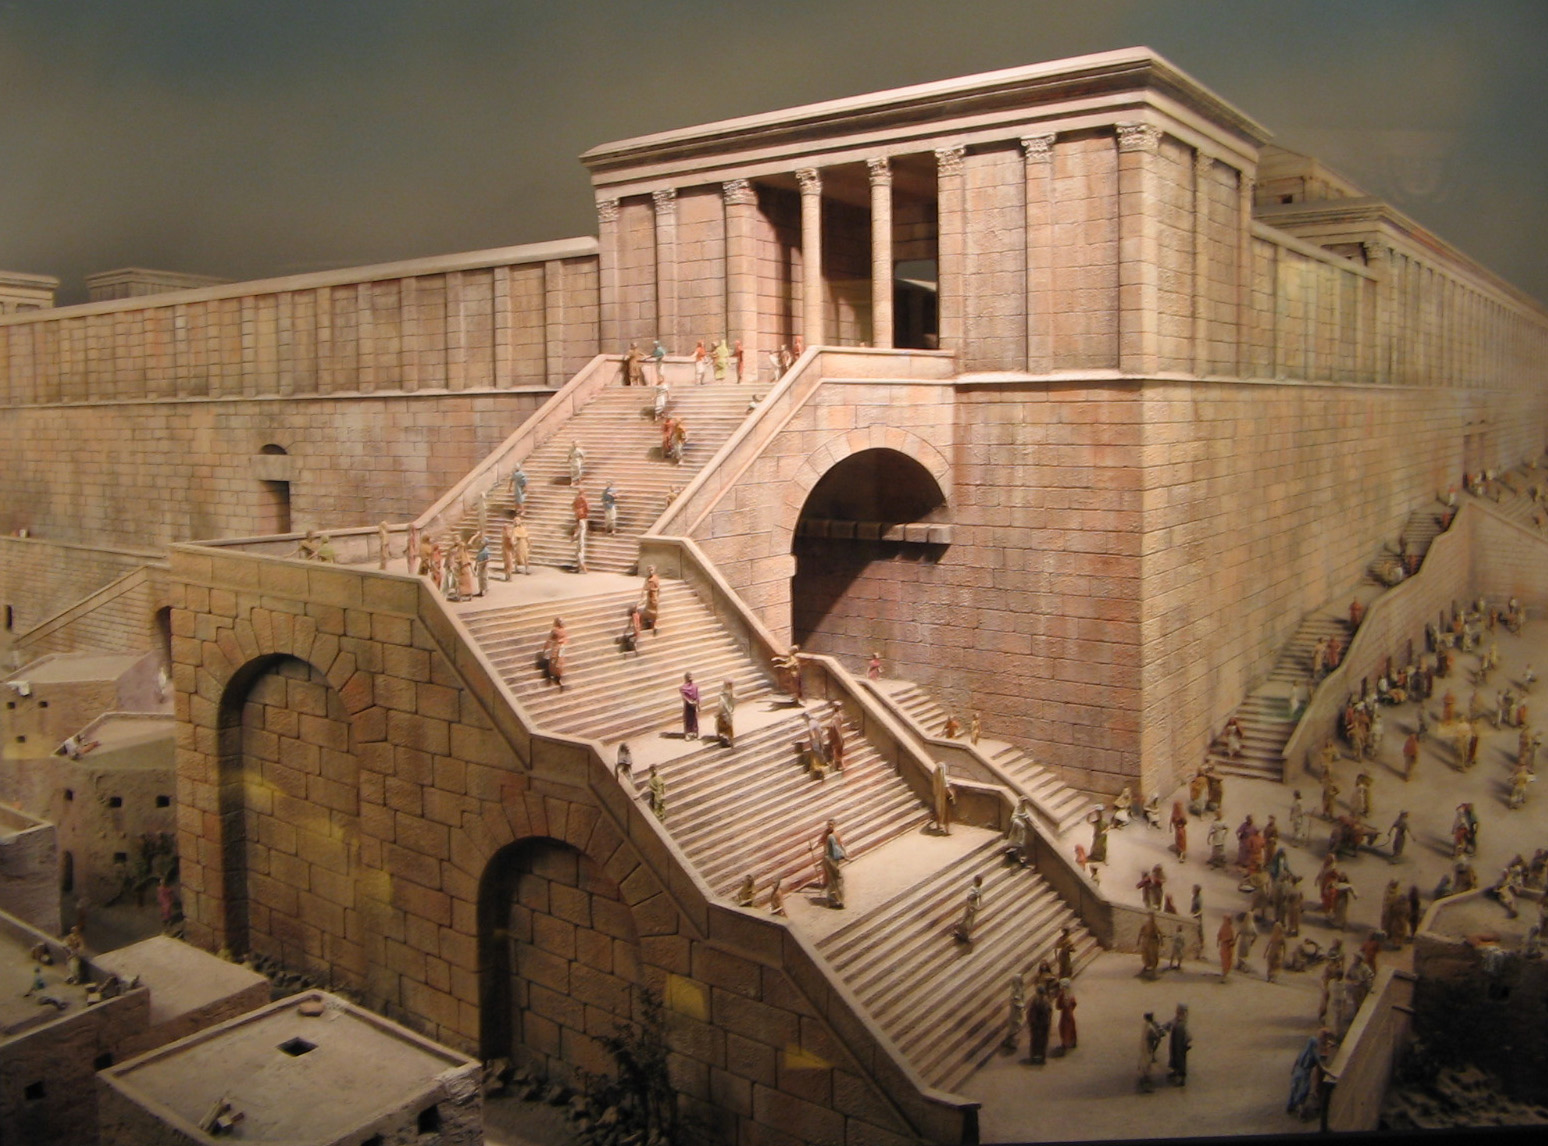 Reconstruction of Robinson's Arch